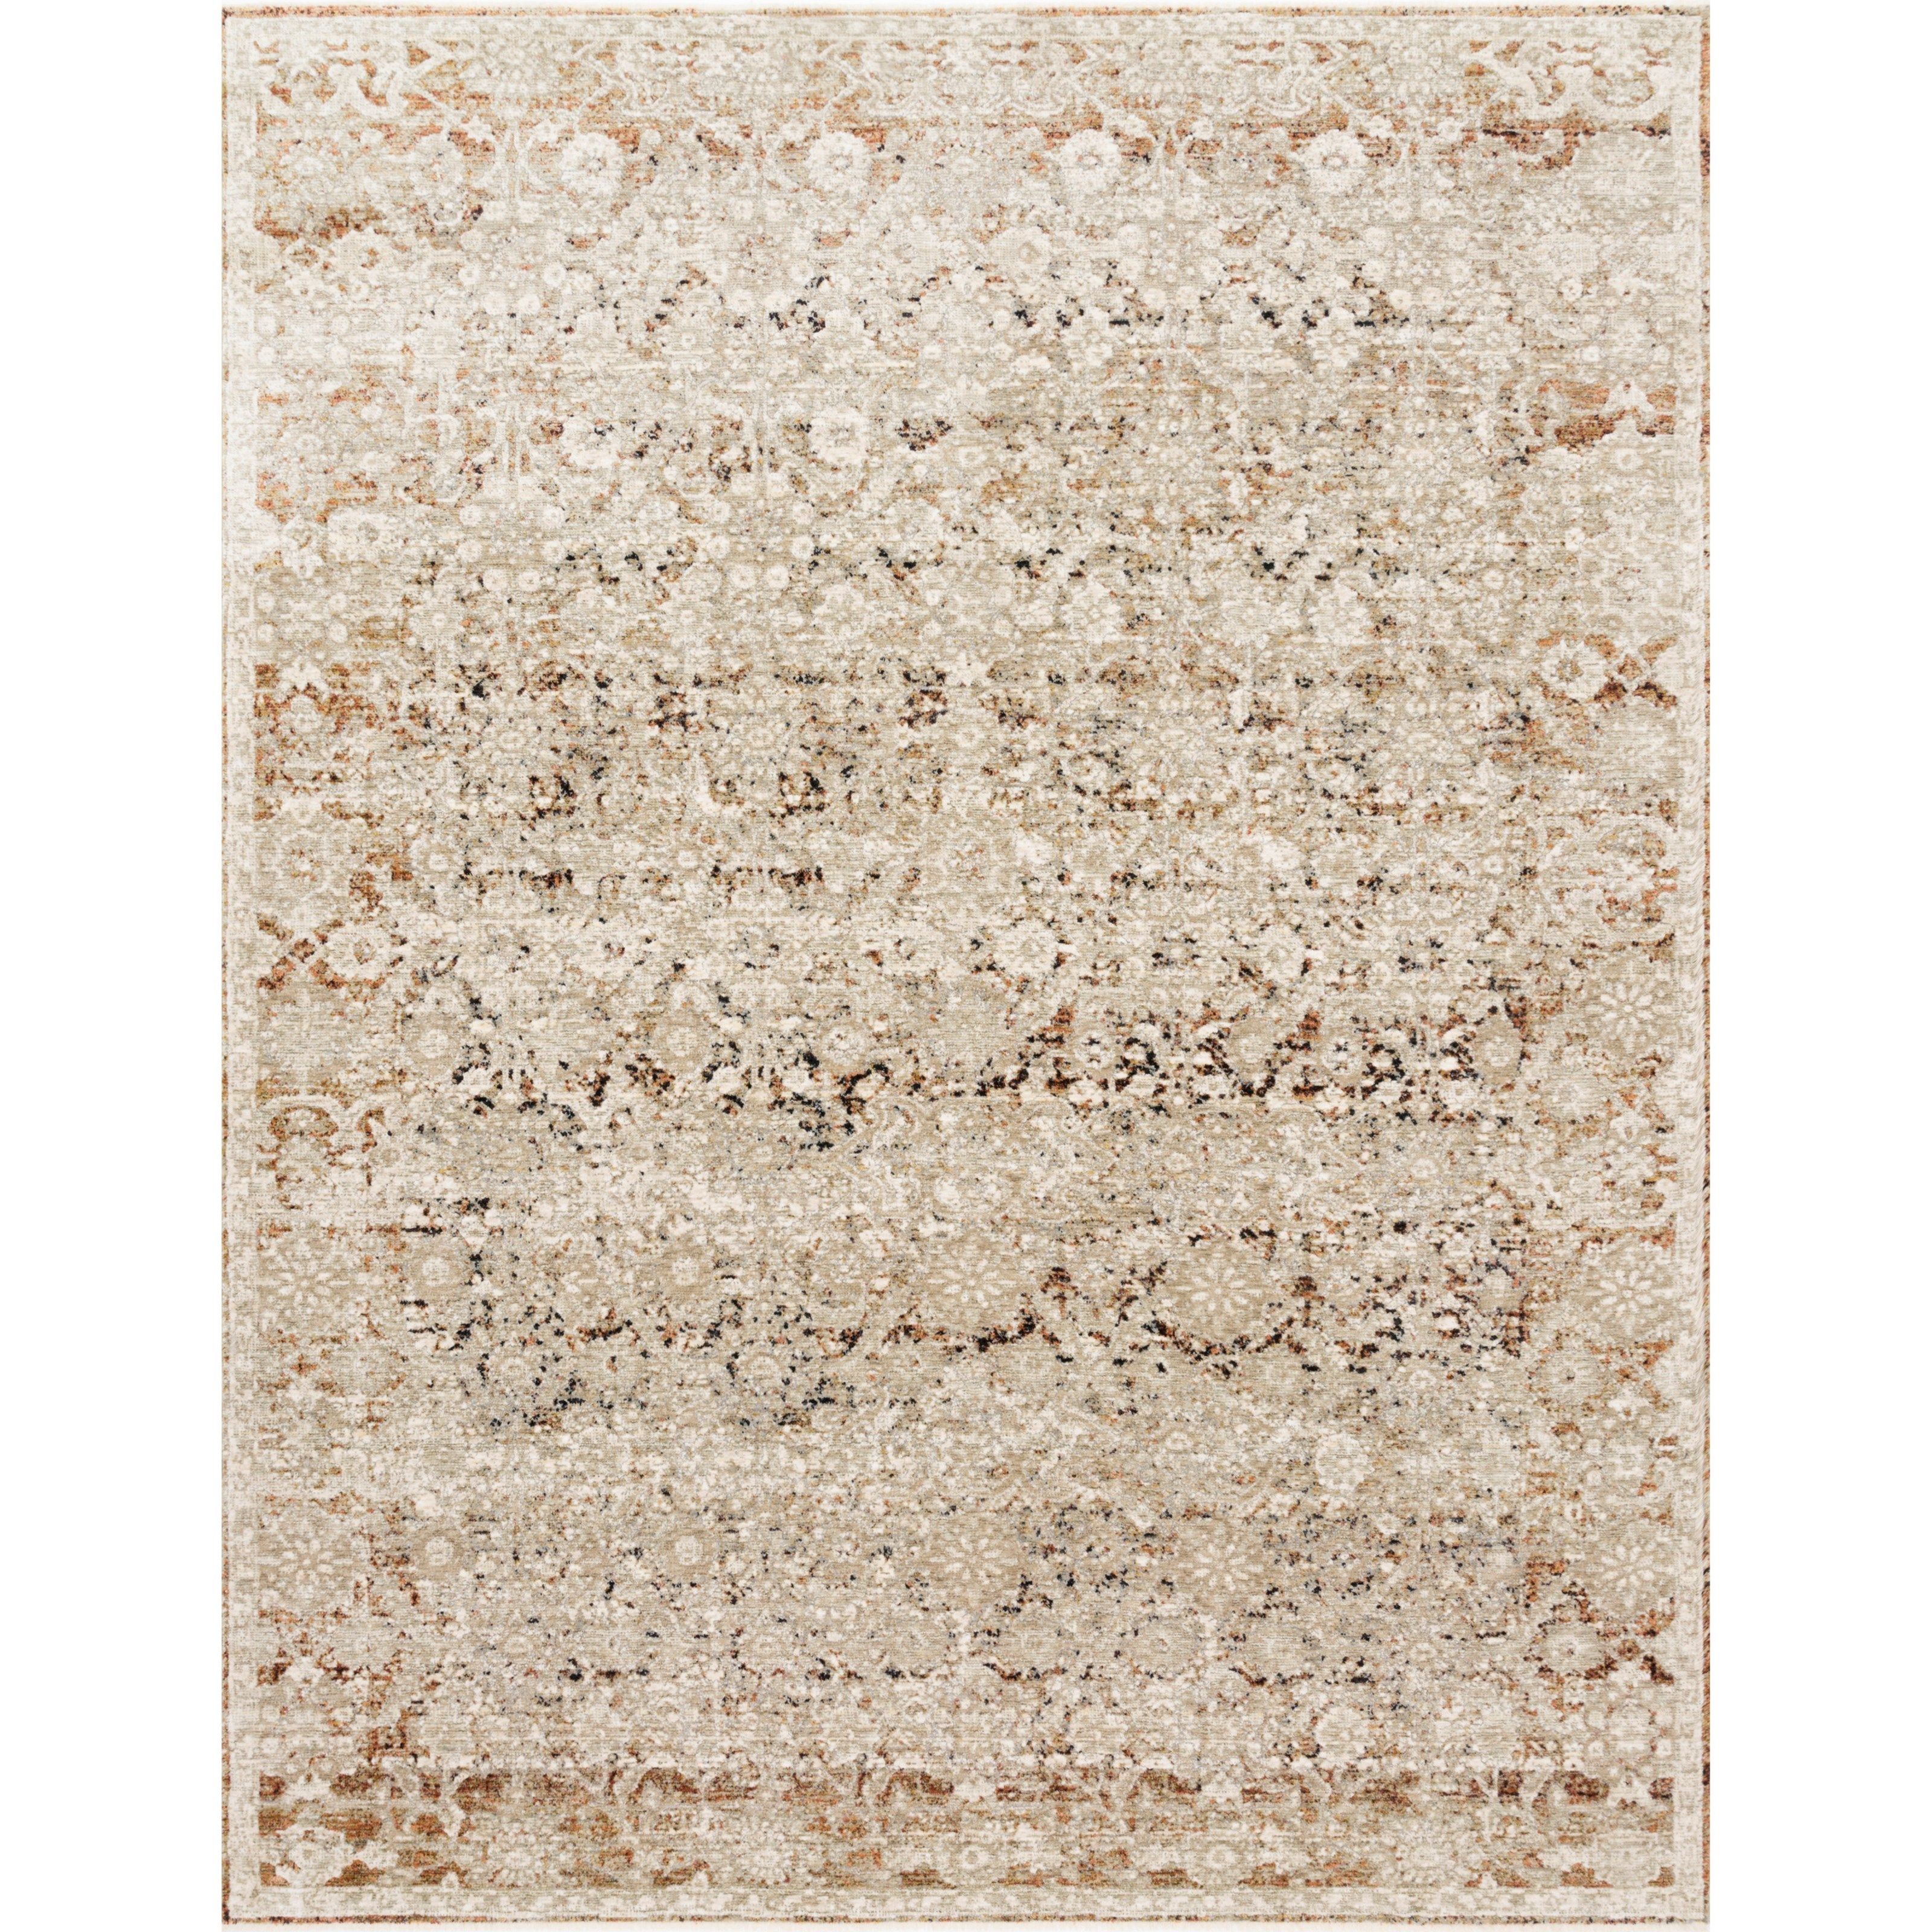 """Theia 9'5"""" x 12'10"""" Natural / Rust Rug by Loloi Rugs at Virginia Furniture Market"""